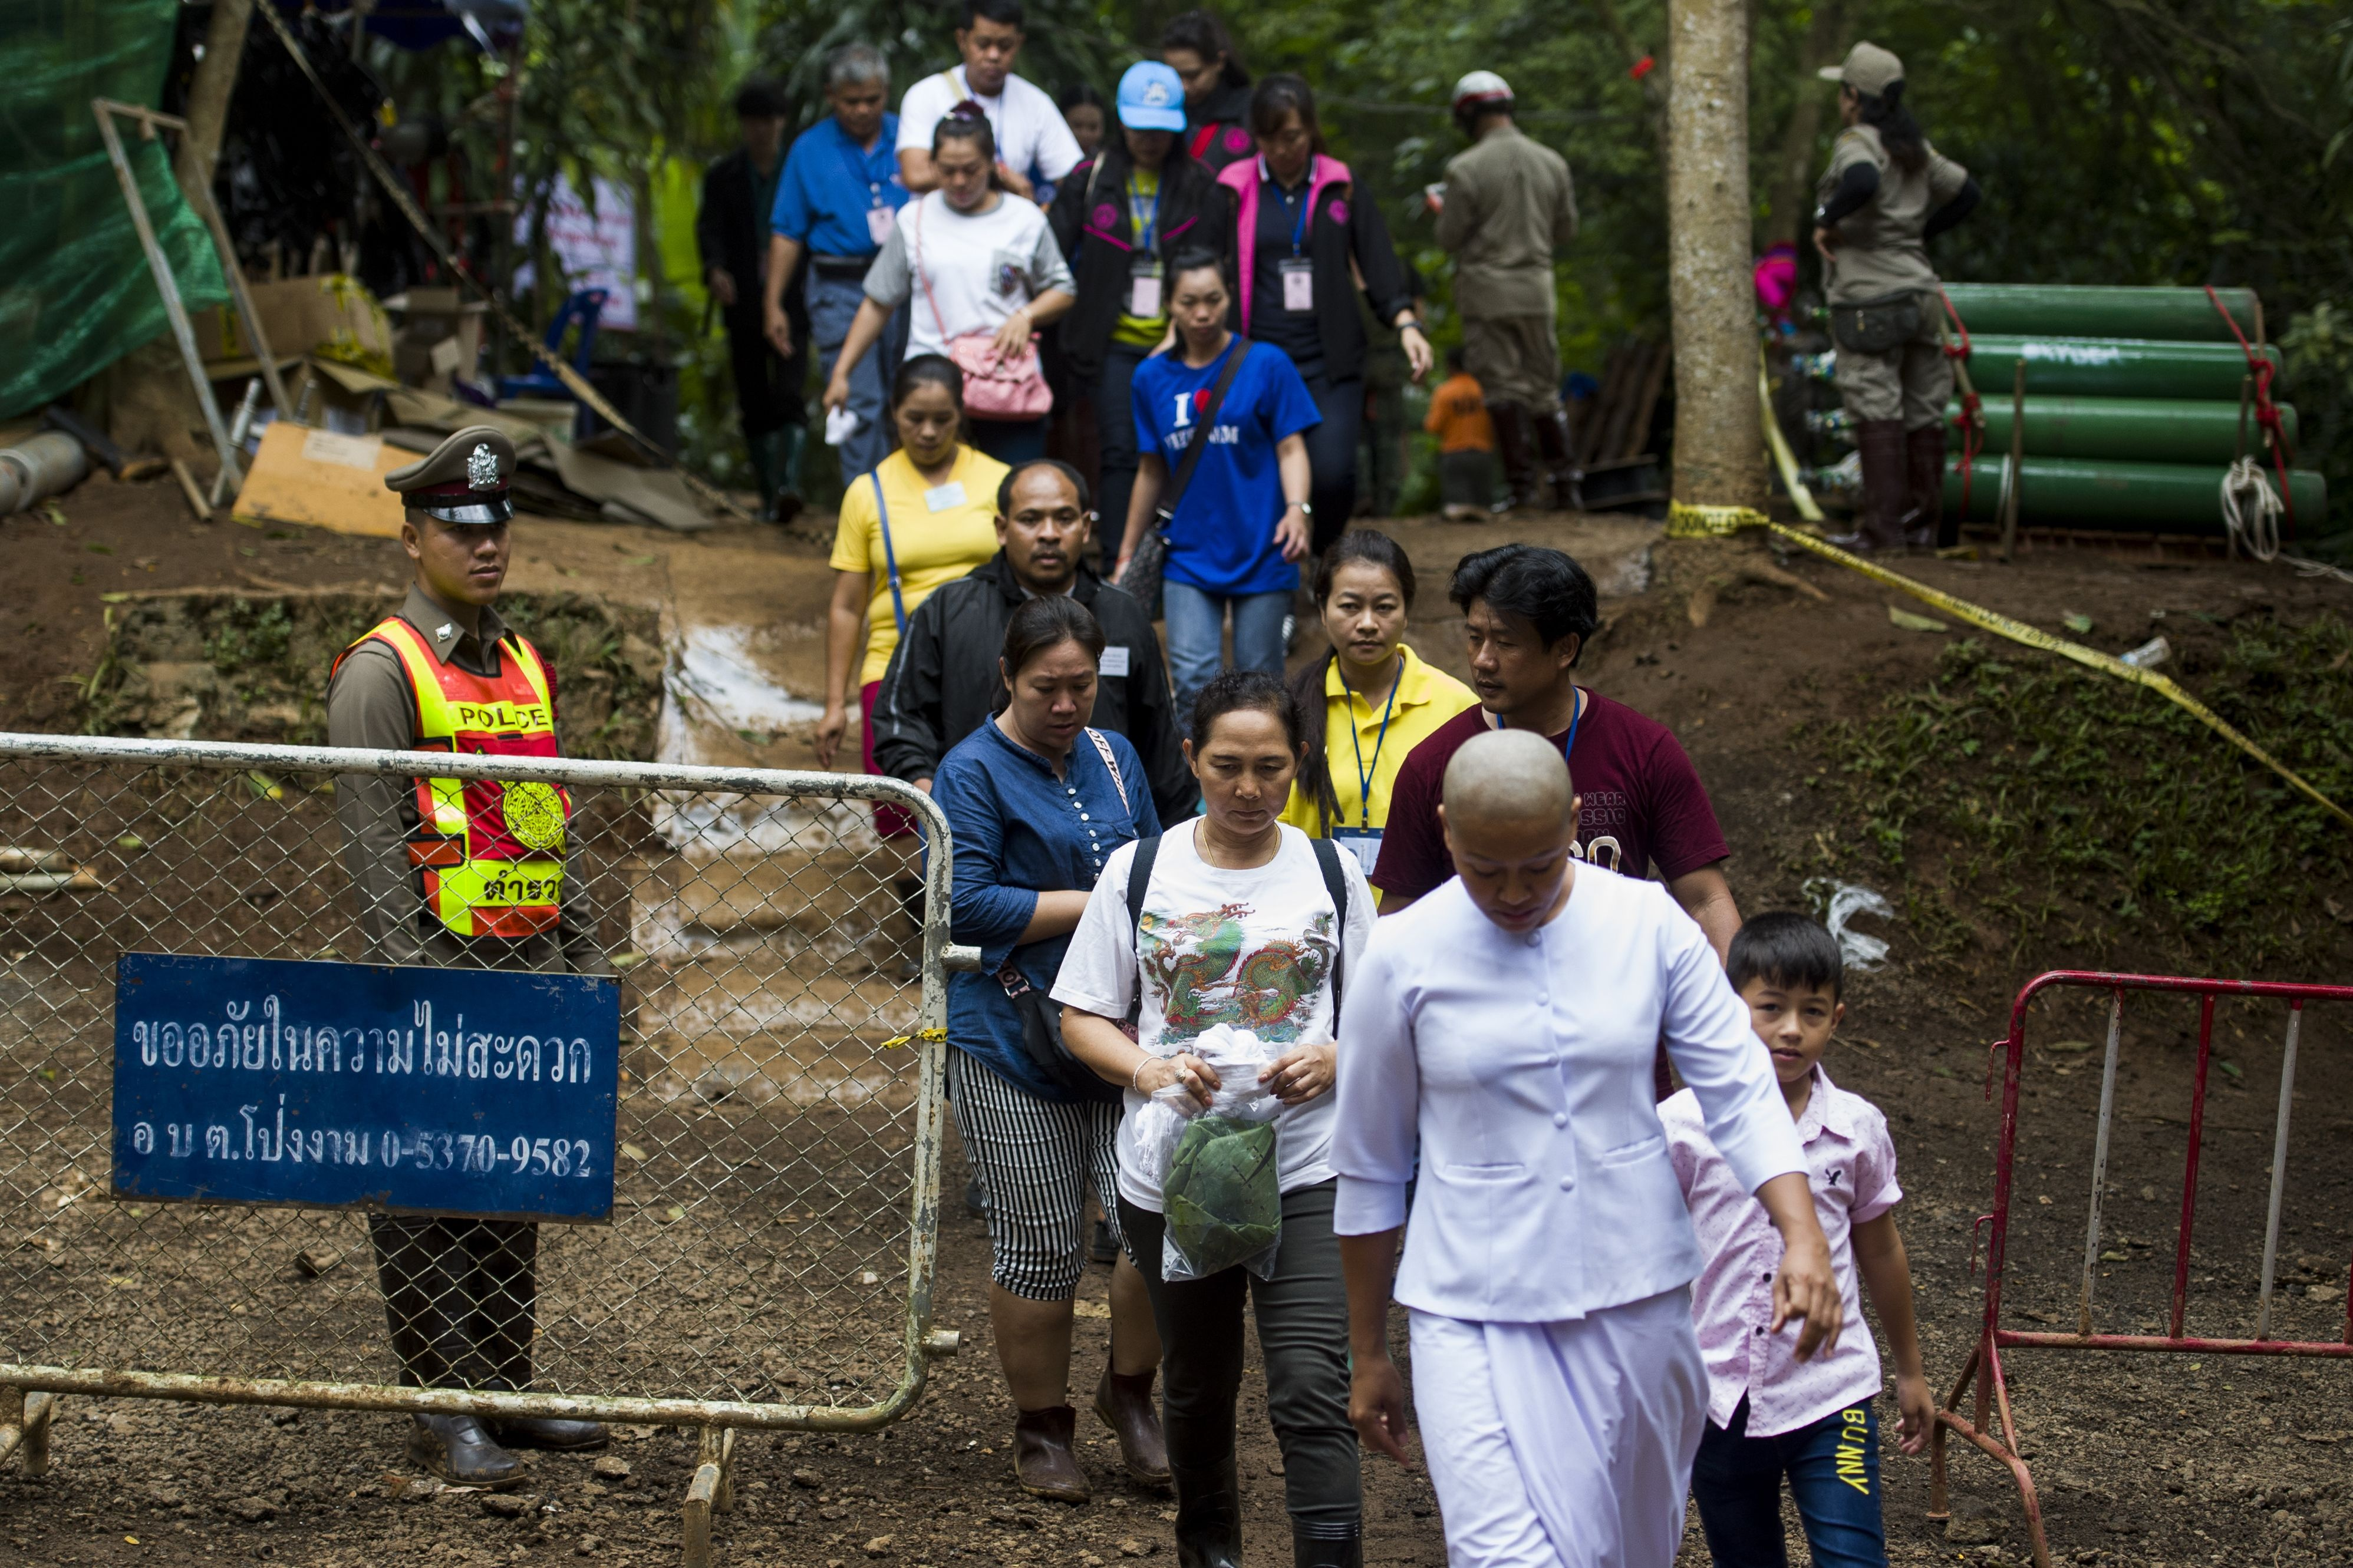 Relatives of the boys walk from the cave complex after taking part in a prayer ceremony as rescue operations continue for the 12 boys and their soccer coach.